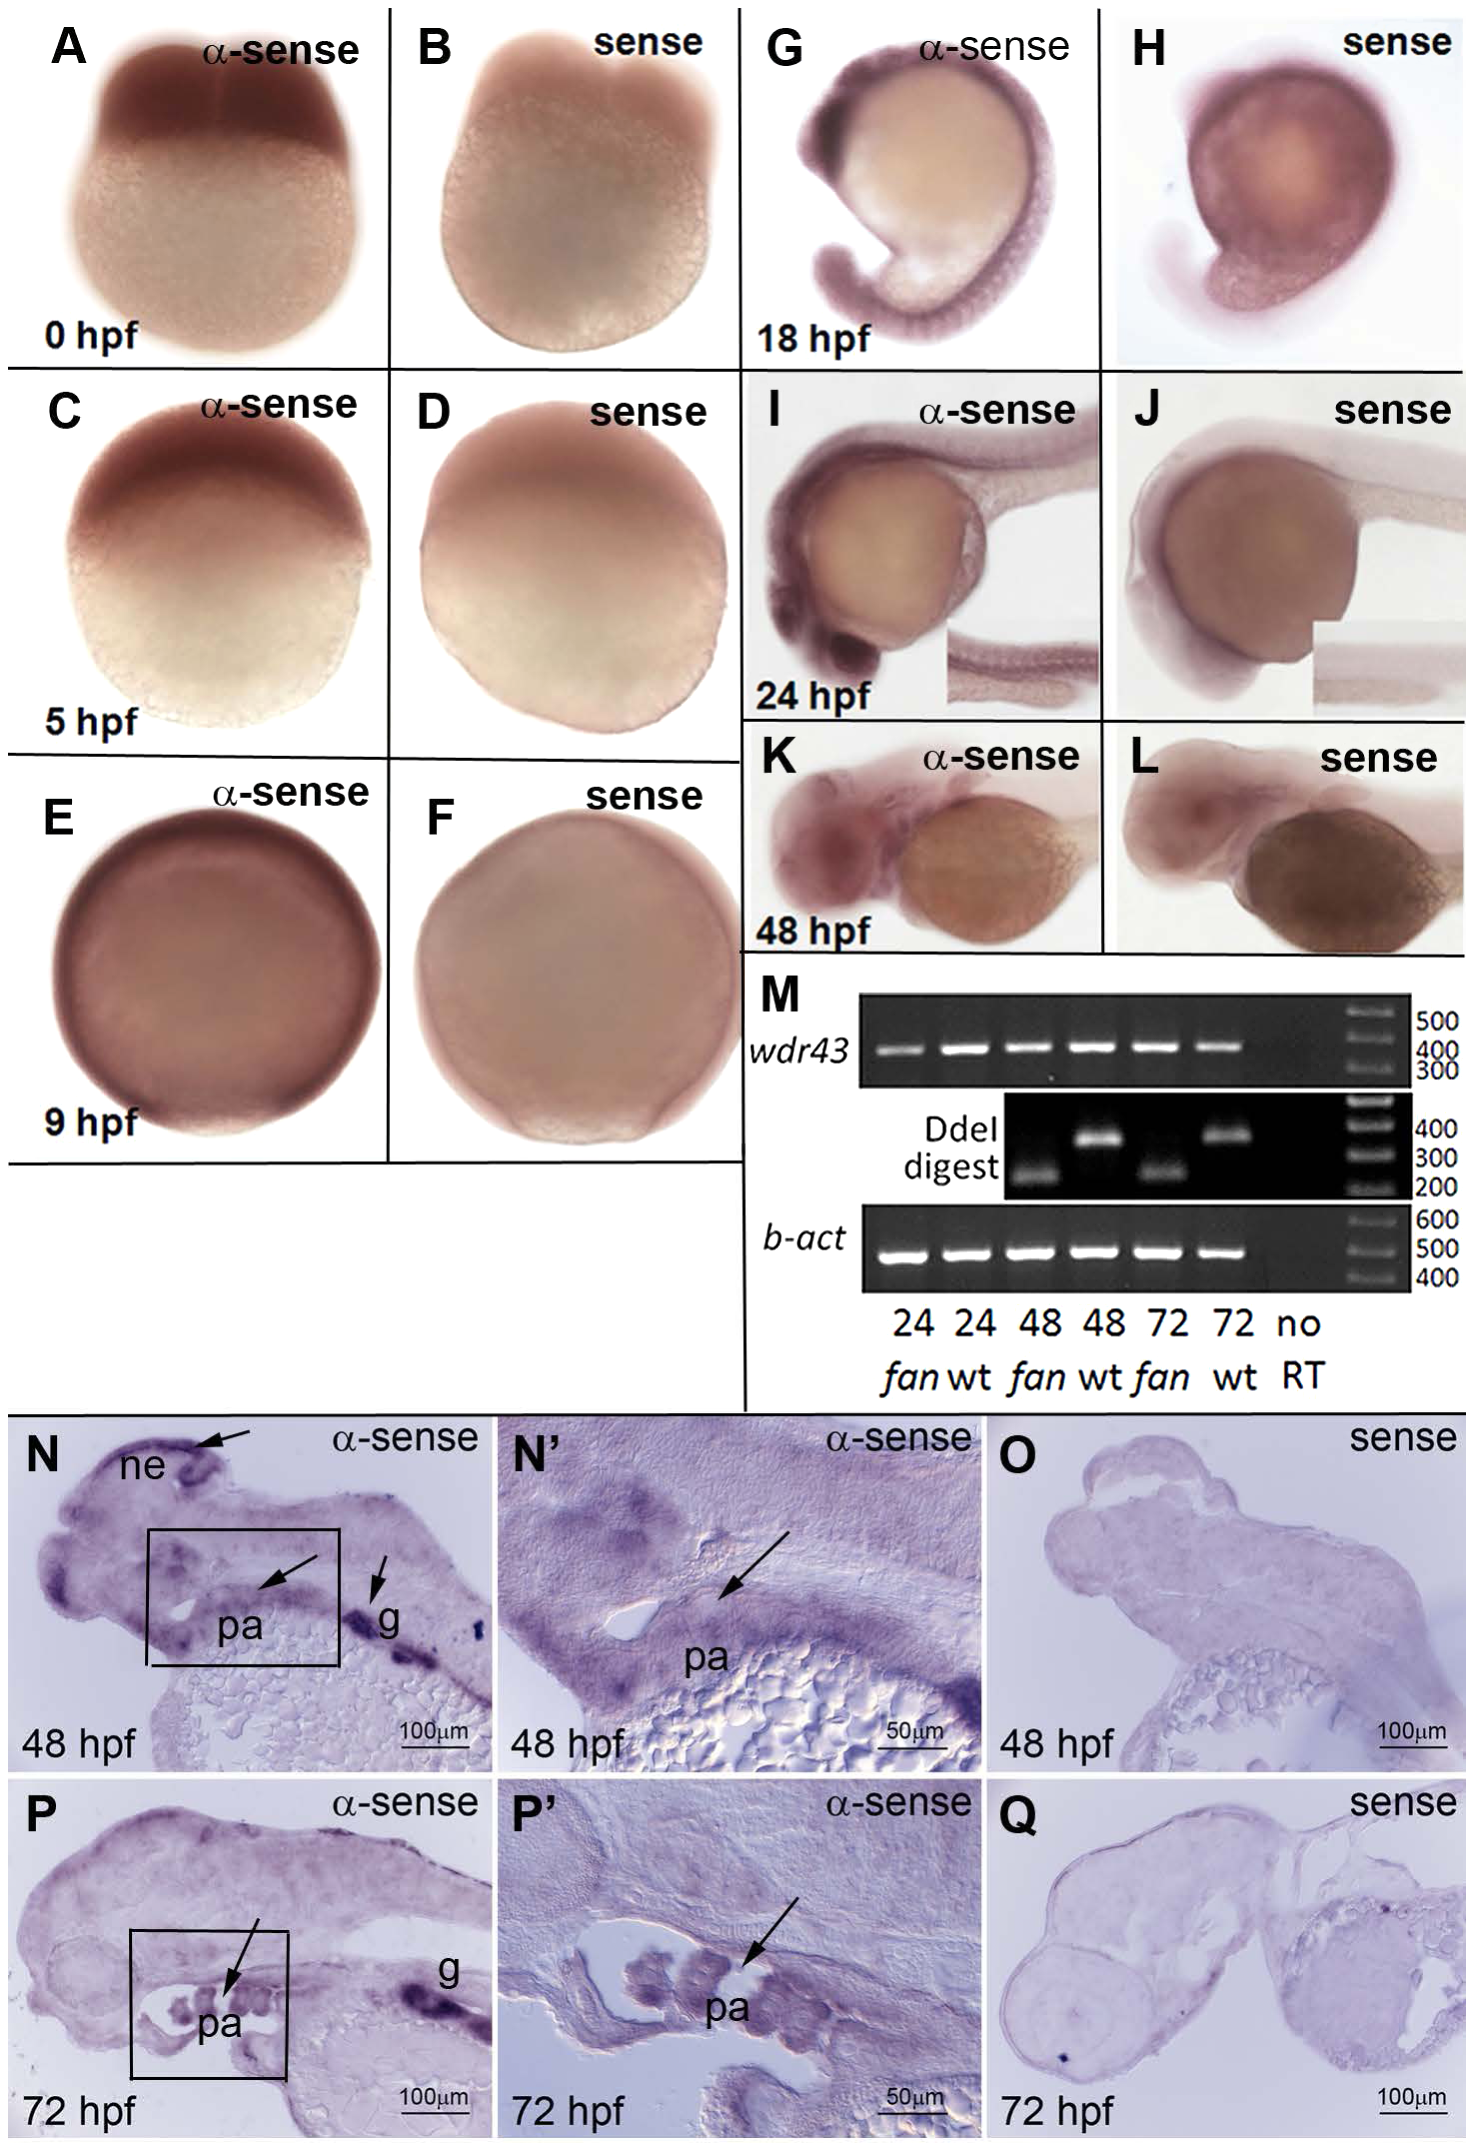 Developmental expression pattern of zebrafish <i>wdr43</i> mRNA.